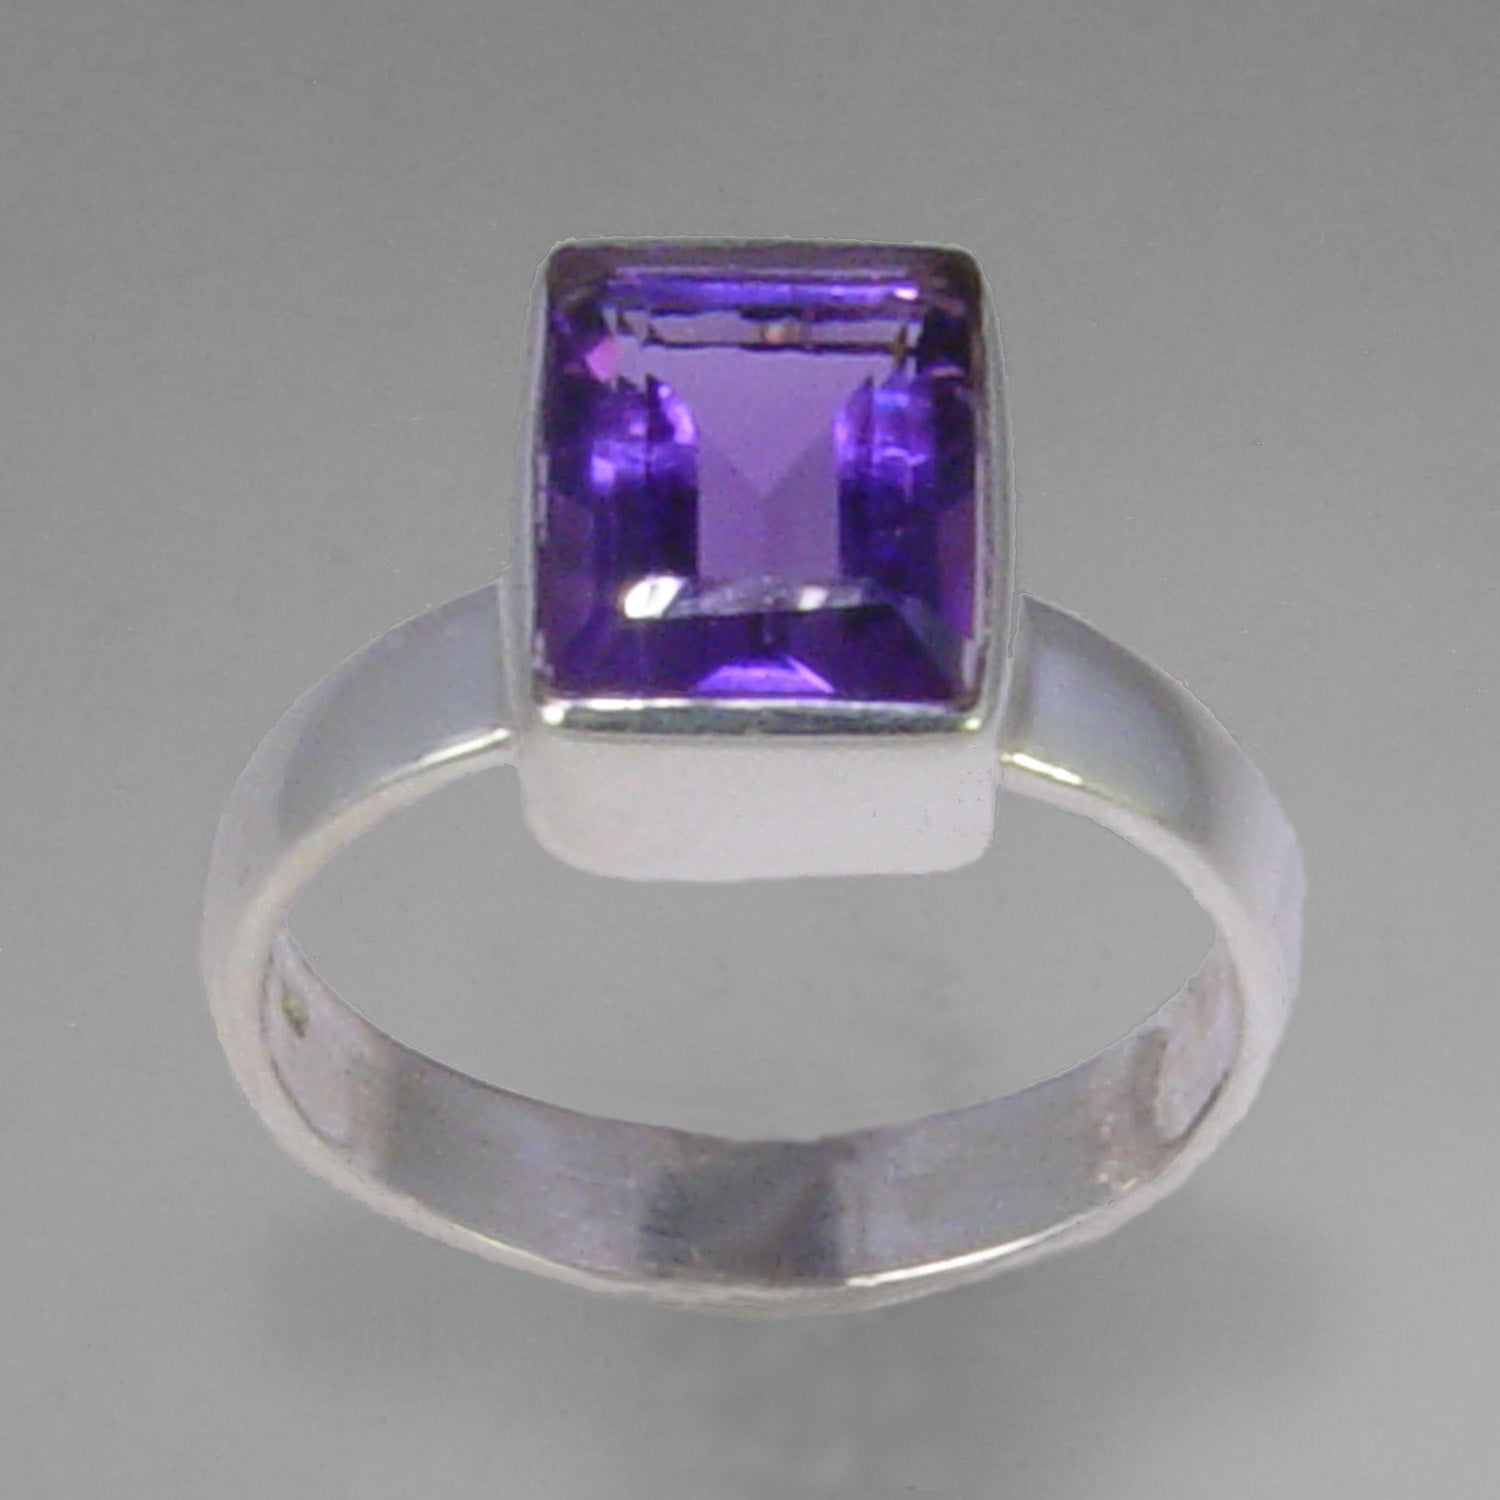 Amethyst 2.5 ct Emerald Bezel Set Sterling Silver Ring, Size 8